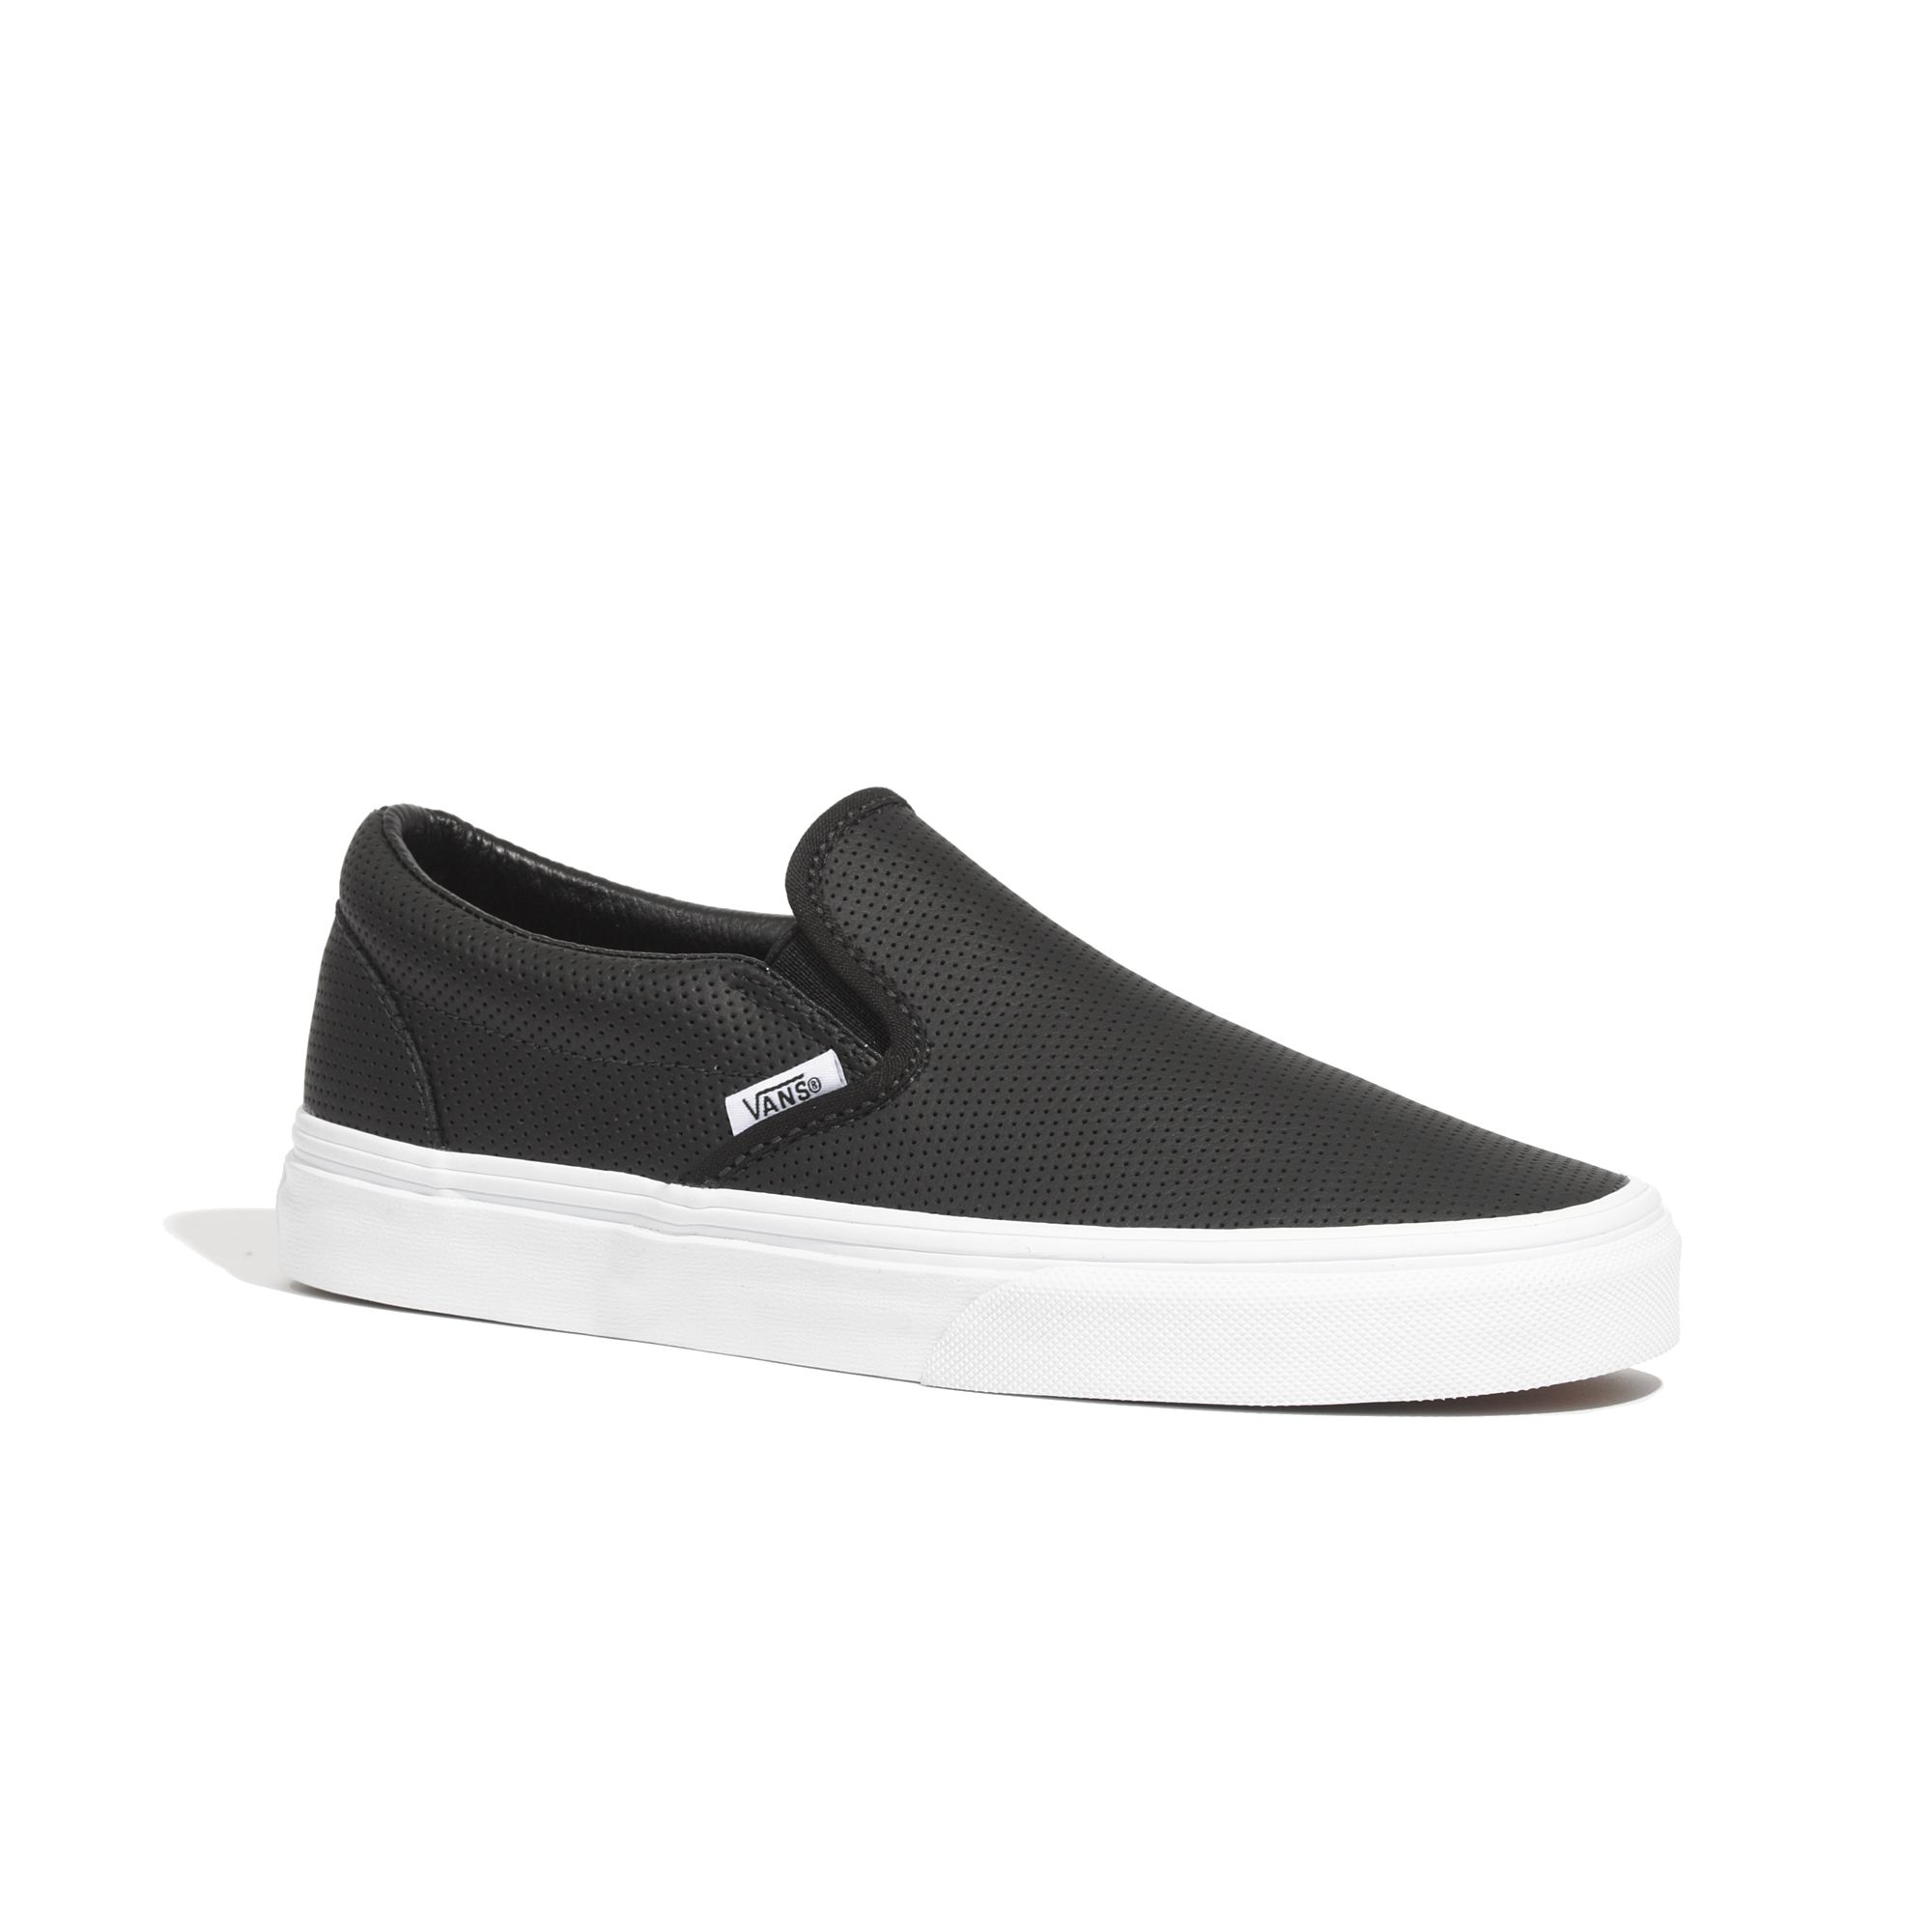 These slip-ons are a major exception. Perhaps if I had a very narrow foot and excellent balance these would have worked. The heel is a comfortable height but too narrow/5.